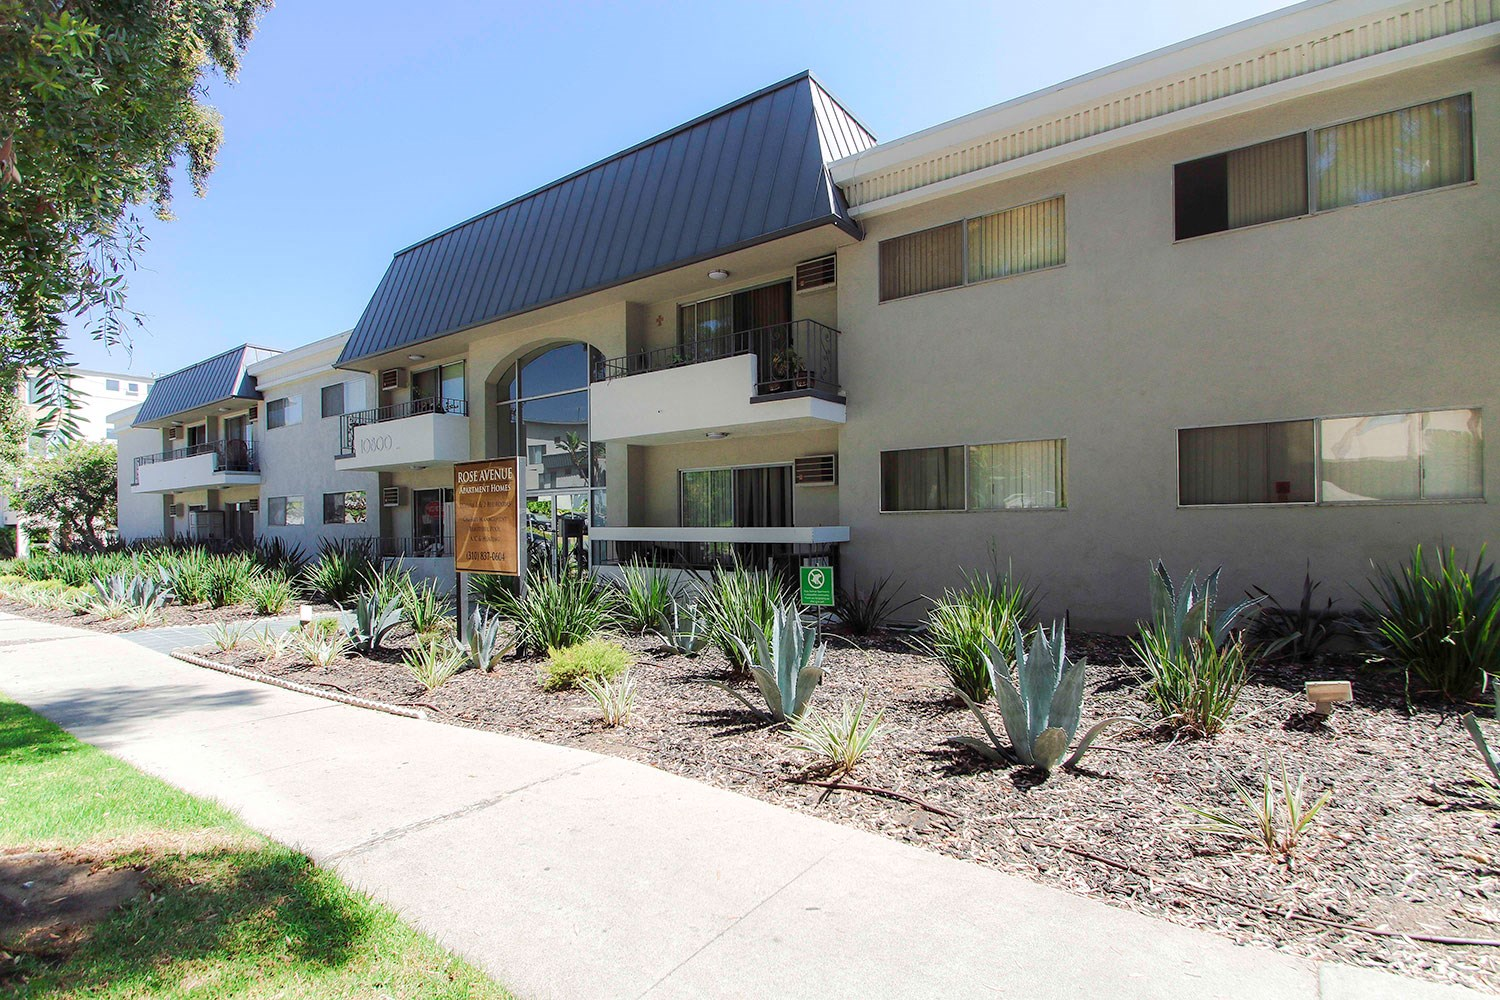 Drought-tolerant greenery decorating the entrance to Rose Apartments.